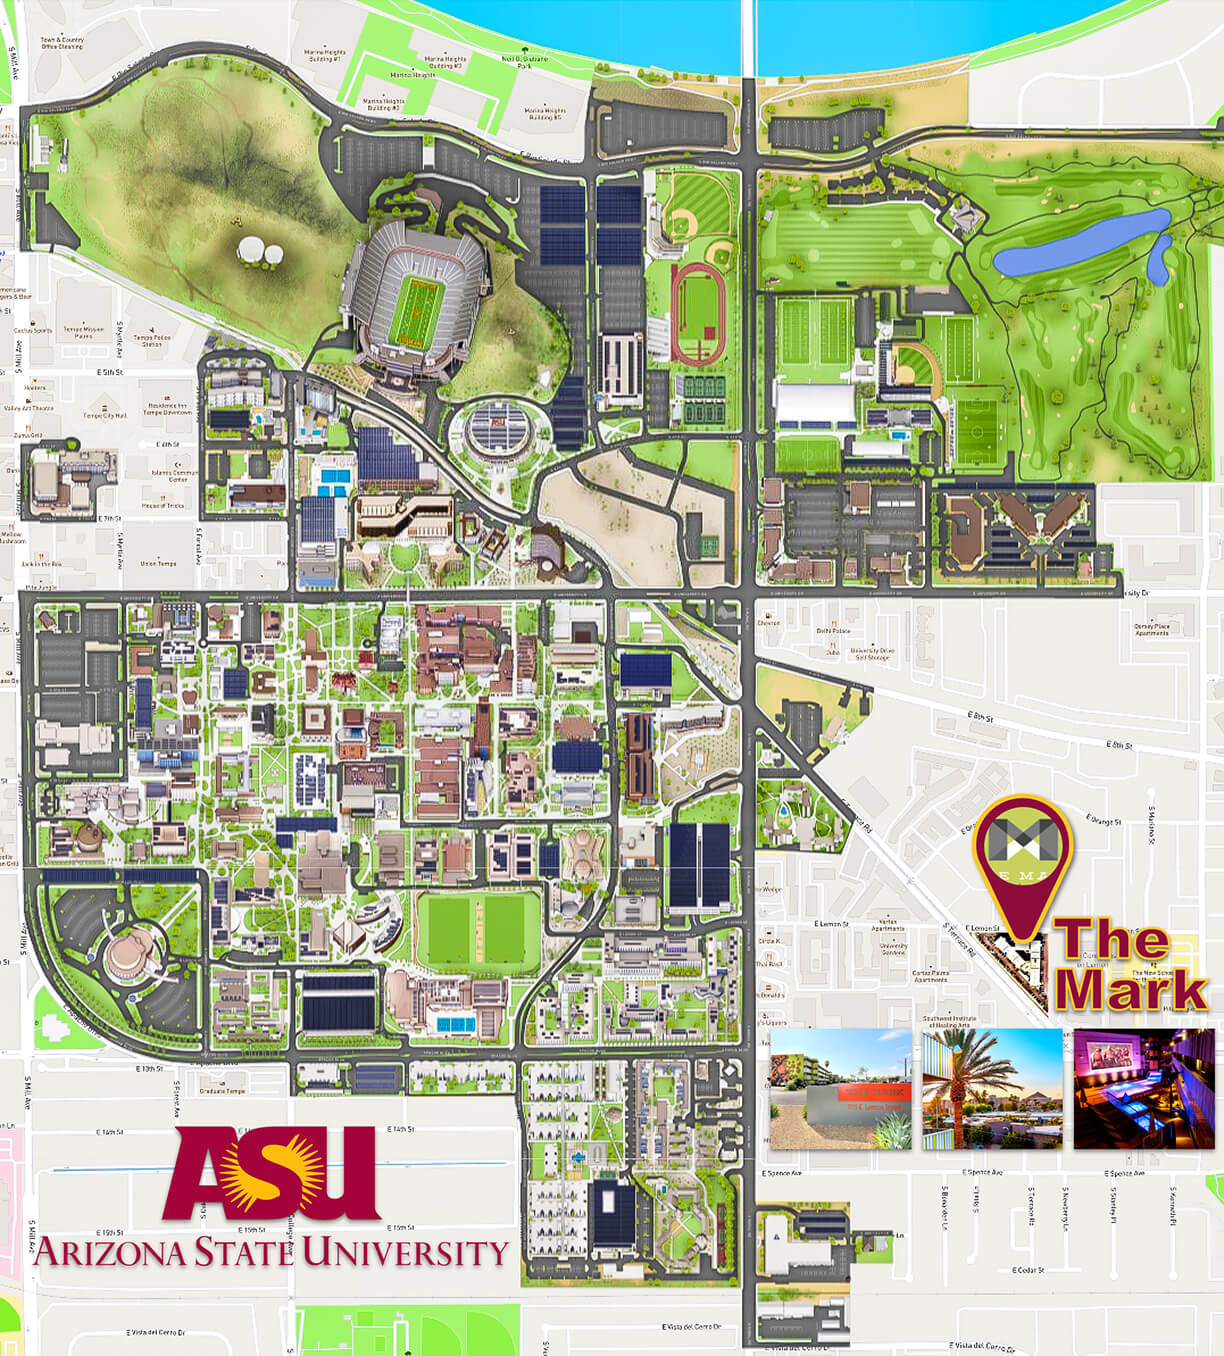 33 Arizona State University Campus Map - Maps Database Source